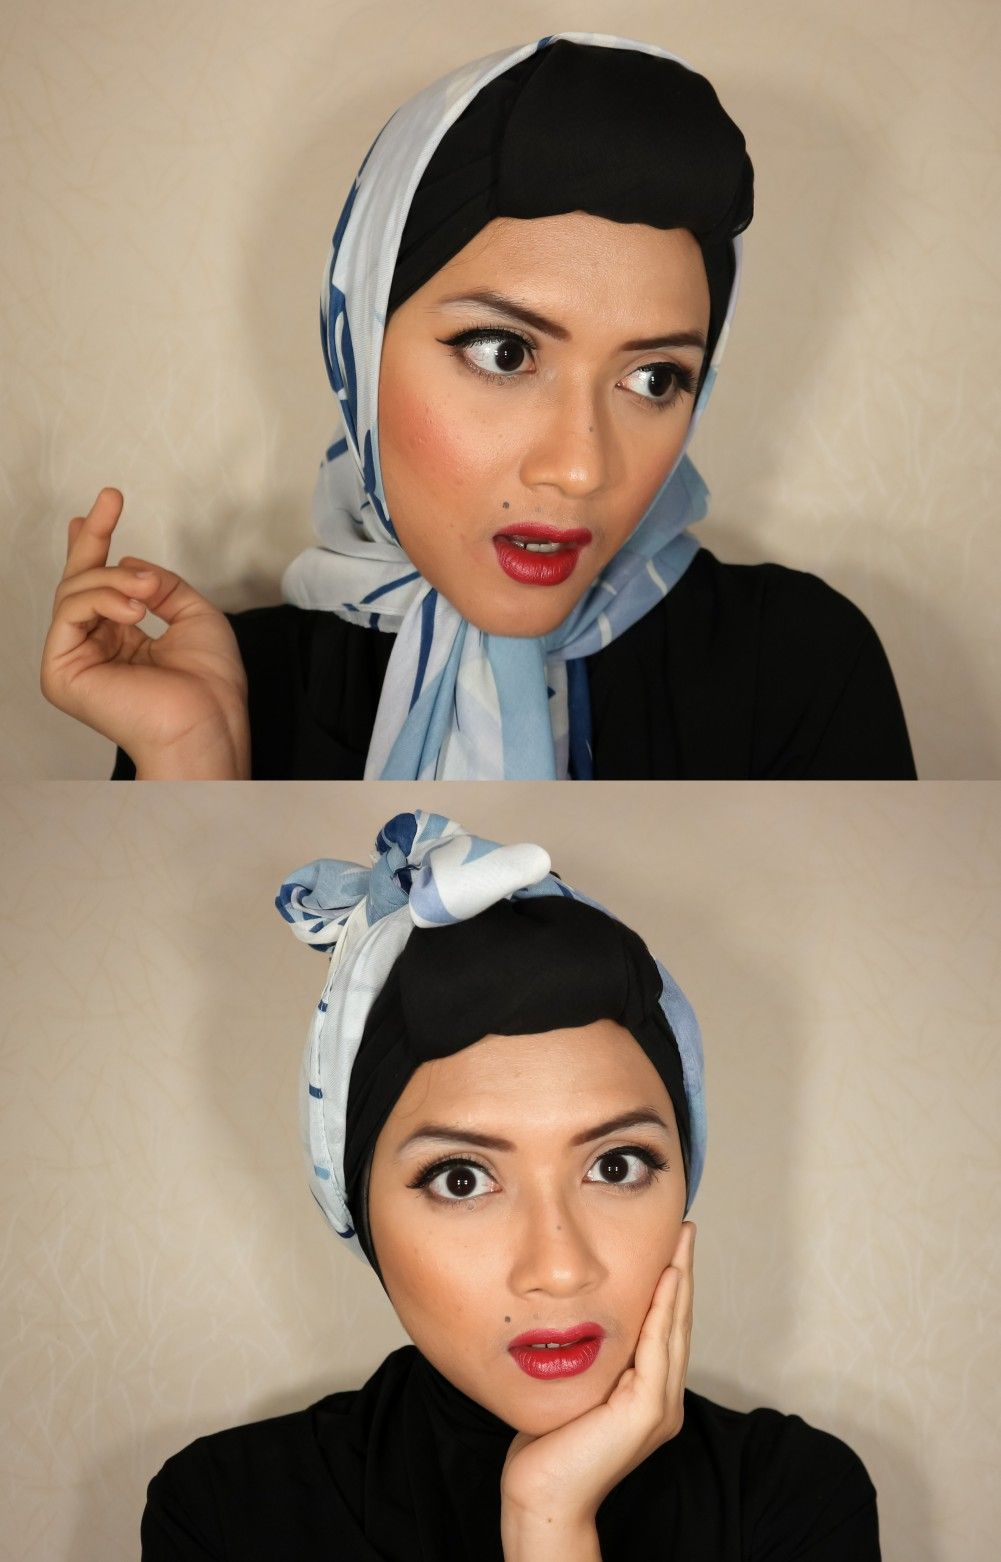 Retro 1950s Make Up and Hijab Look makeup retromakeup